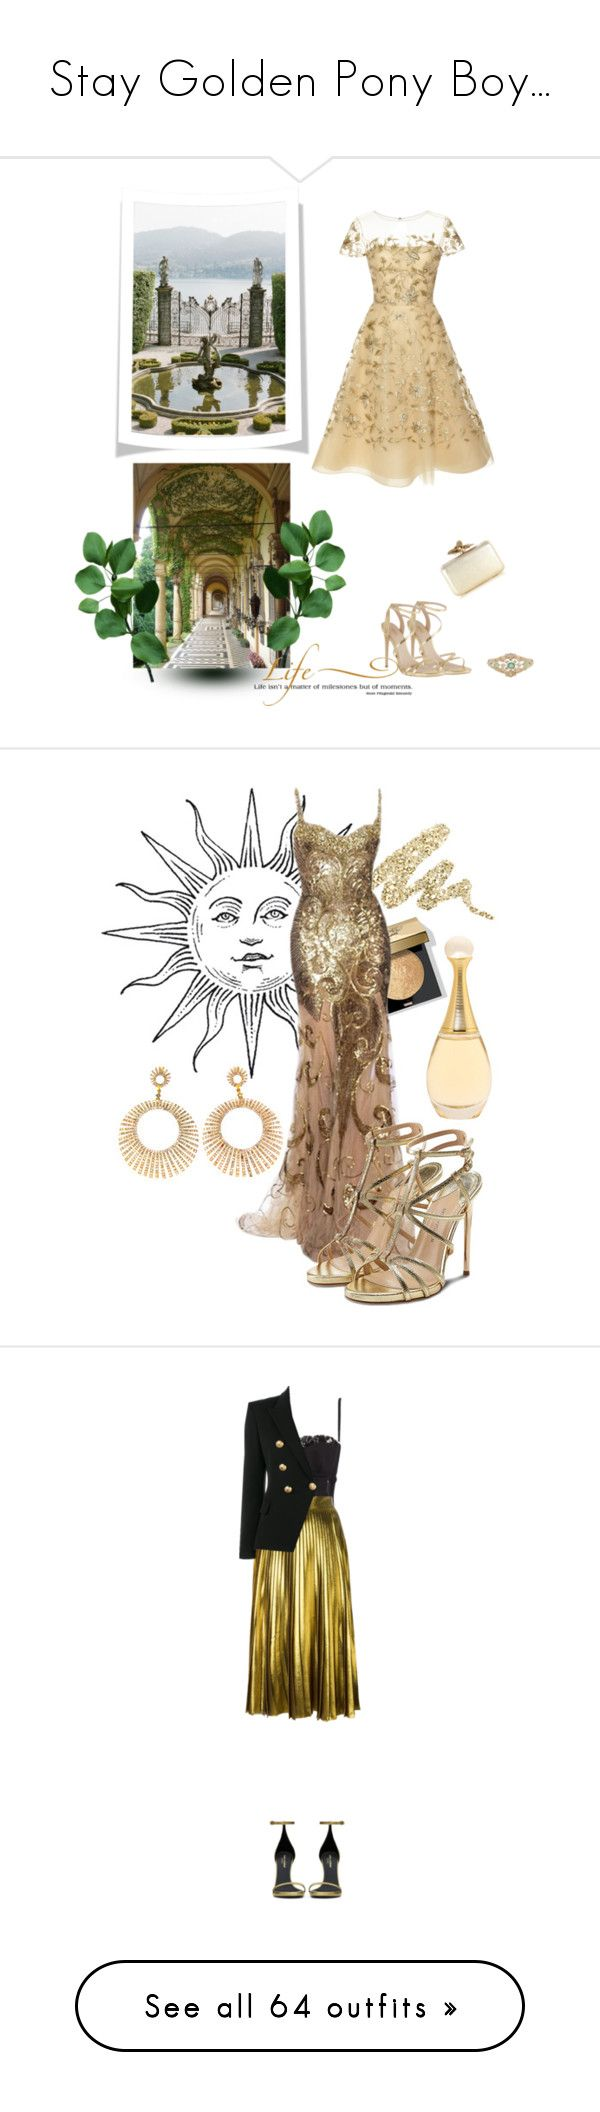 """Stay Golden Pony Boy..."" by mrs-snow ❤ liked on Polyvore featuring Oscar de la Renta, Carvela, WALL, Karen Millen, Urban Decay, Bobbi Brown Cosmetics, Bensimon, Paul Andrew, Christian Dior and Dolce&Gabbana"